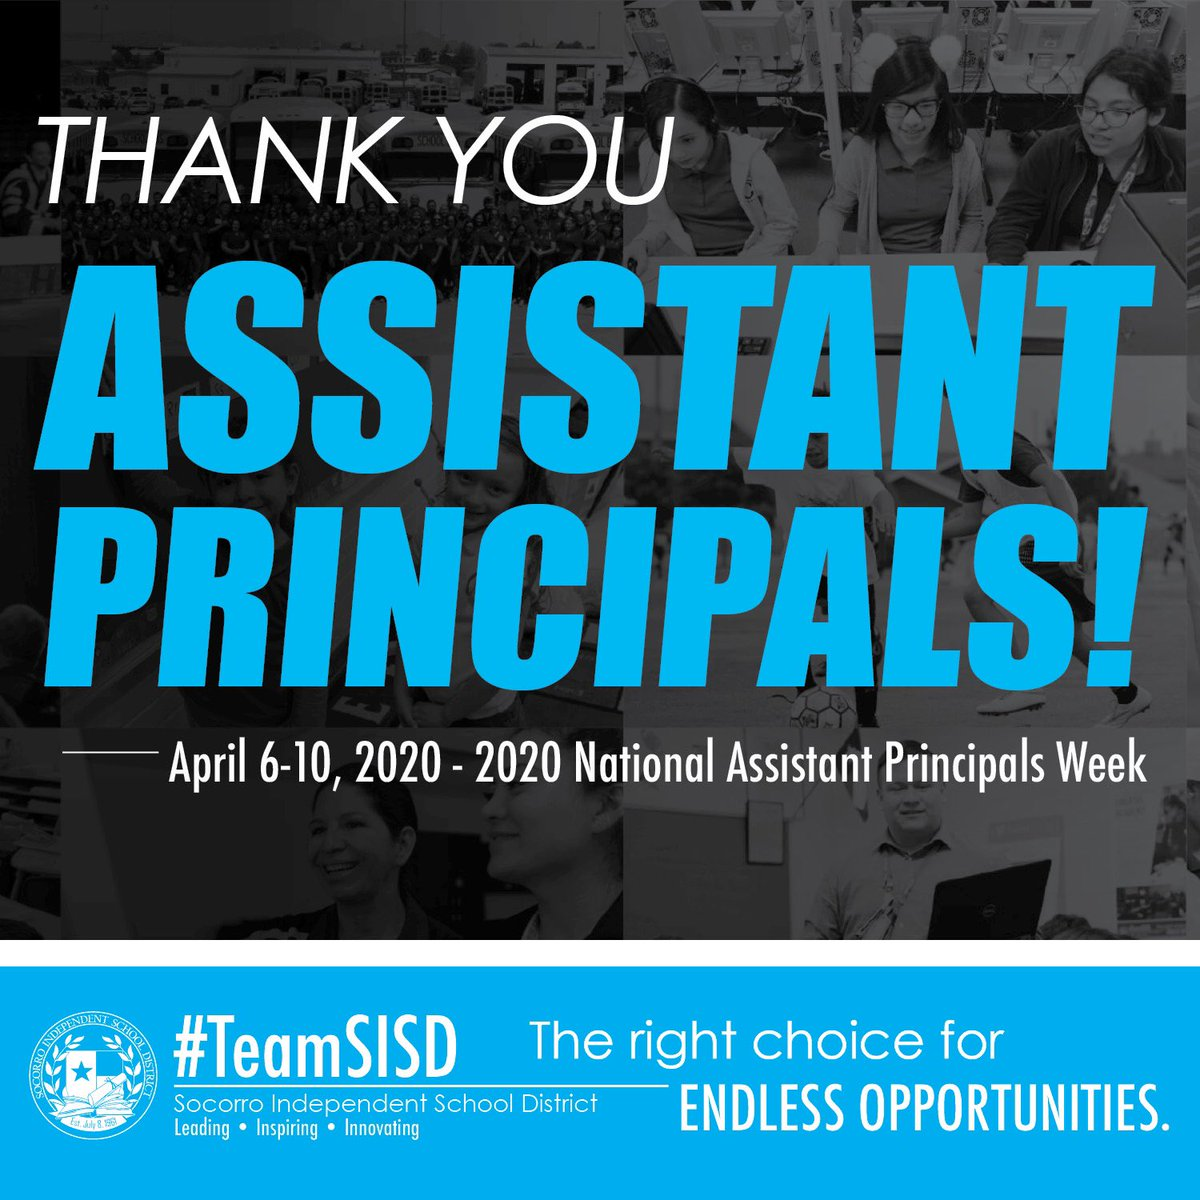 Happy National Assistant Principals Week! Grateful for our awesome #TeamSISD assistant principals, who are helping our teachers, students, staff move forward in these uncharted waters. Appreciate all you do for our schools and district today and every day! #APWeek20